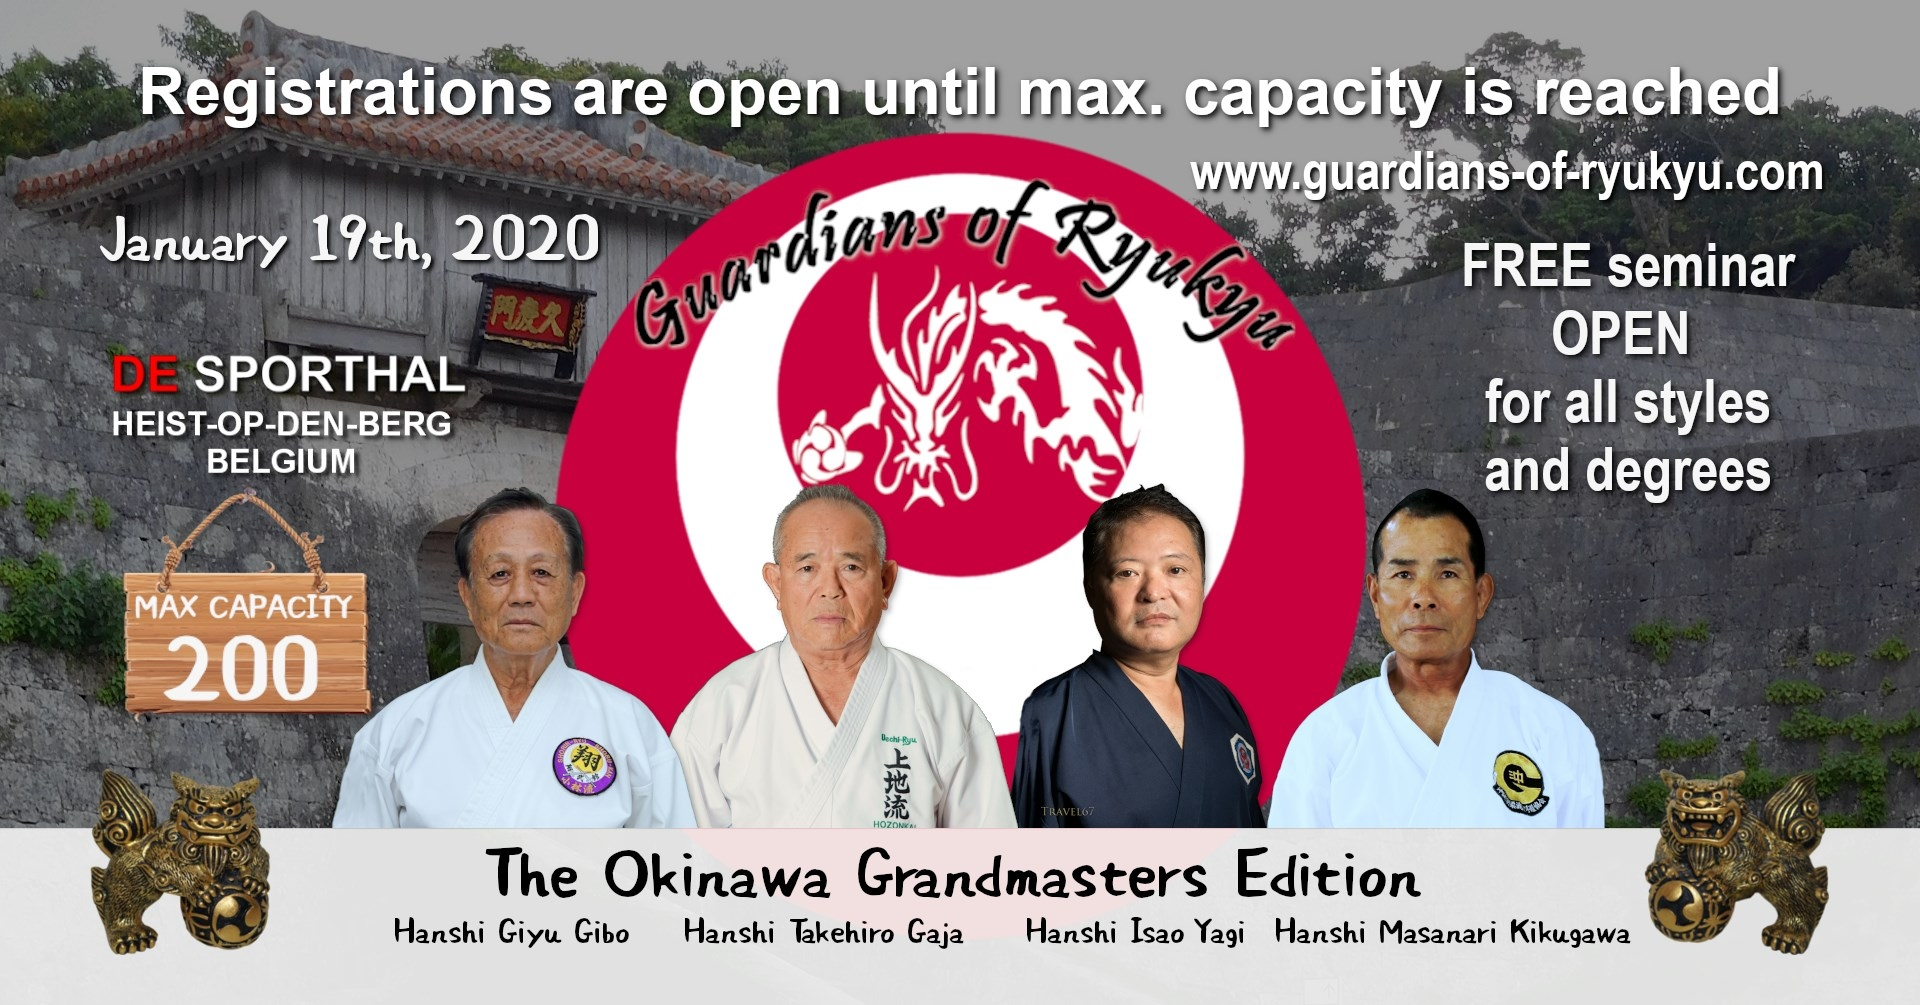 Gardians of Ryu Kyu Grand Masters Edition 2020